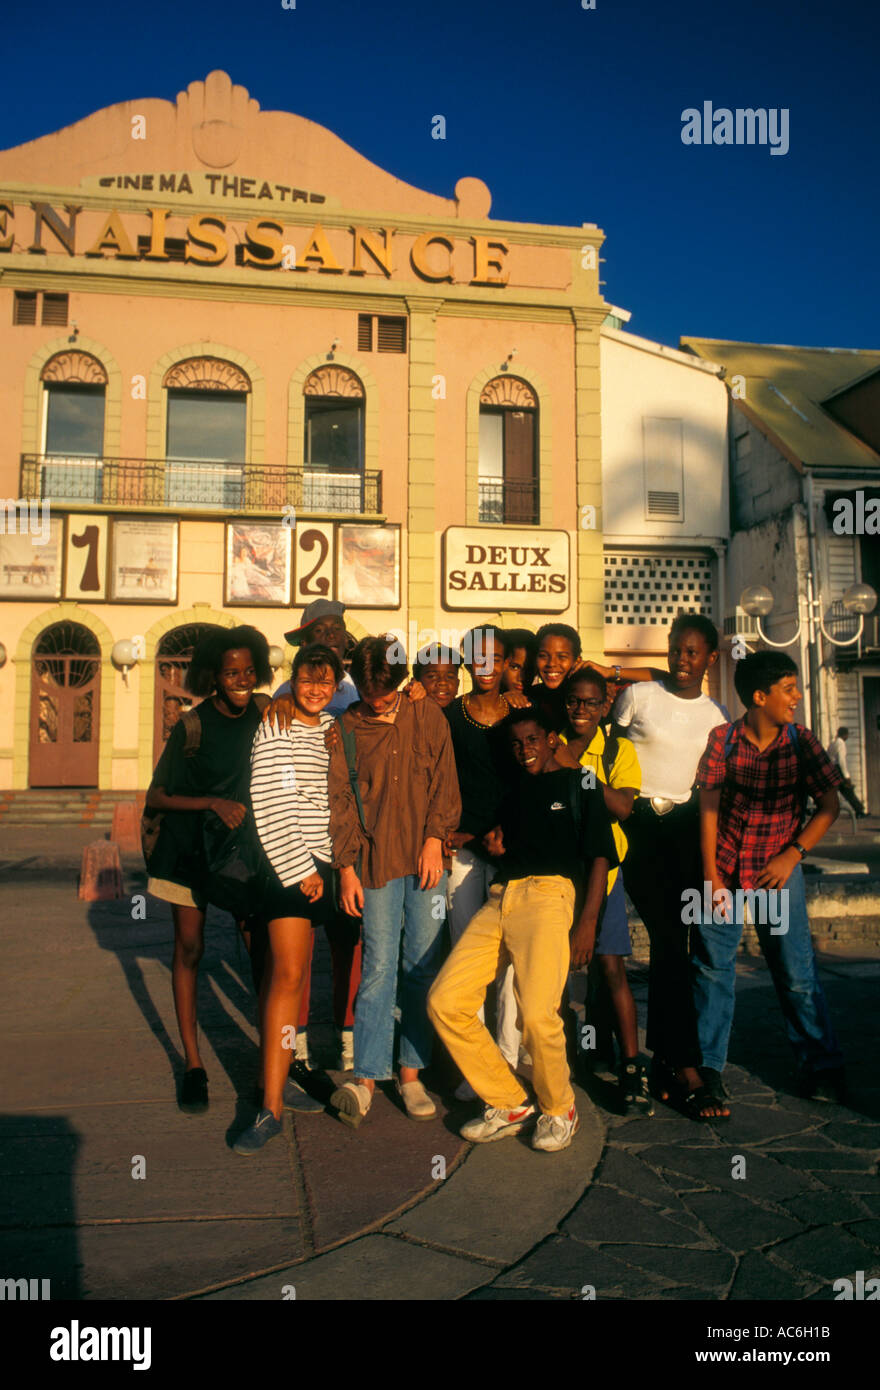 French students, students, teen girls, teen boys, eye contact, teenagers, Pointe-a-Pitre, Grande-Terre, Guadeloupe, France, French West Indies - Stock Image